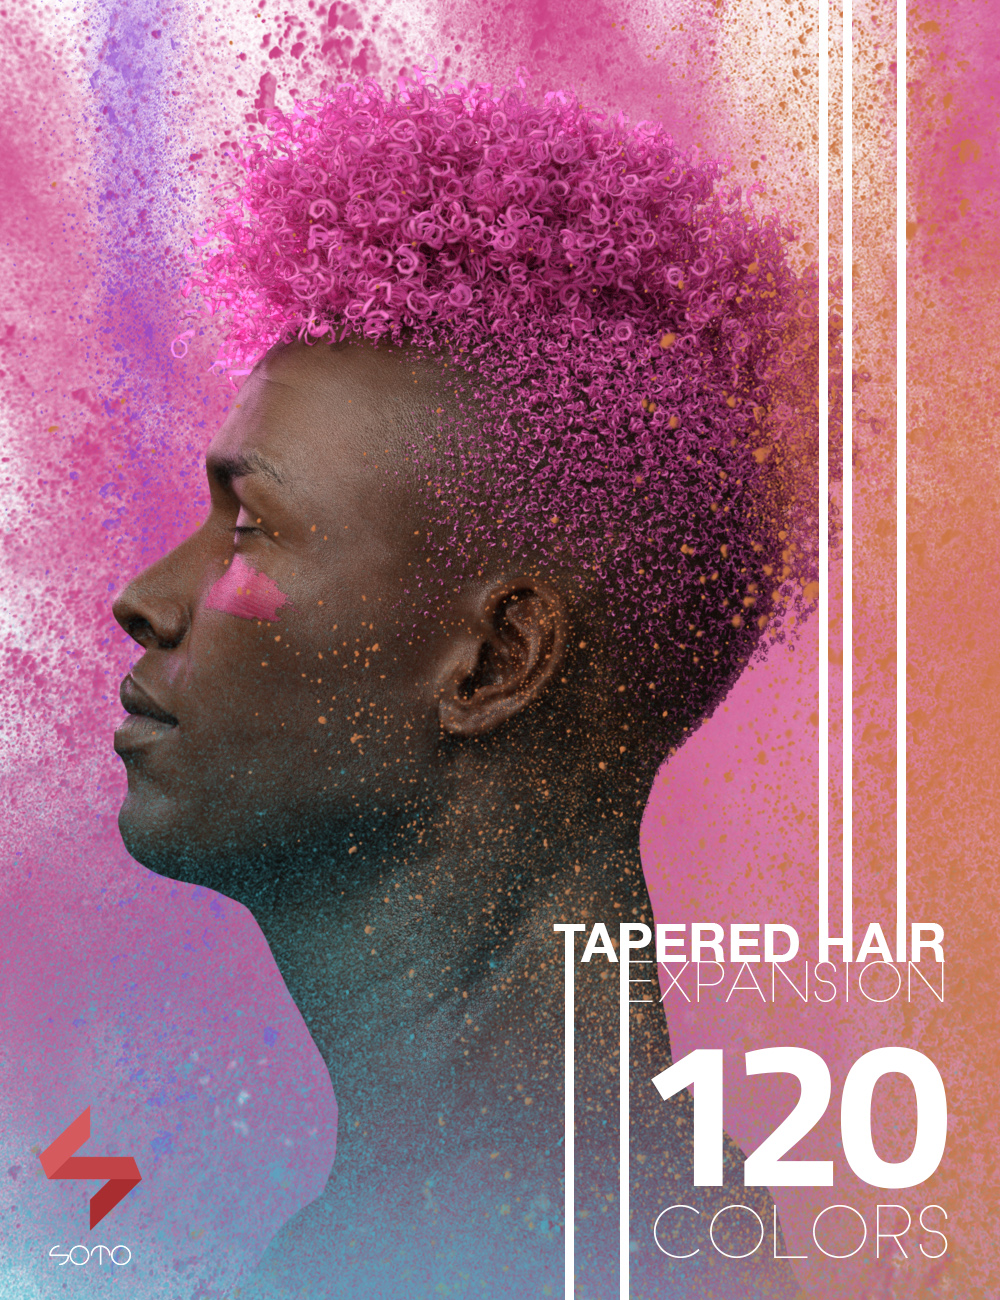 Tapered Hair Expansion for Genesis, Genesis 2, and Genesis 3 by: Soto, 3D Models by Daz 3D